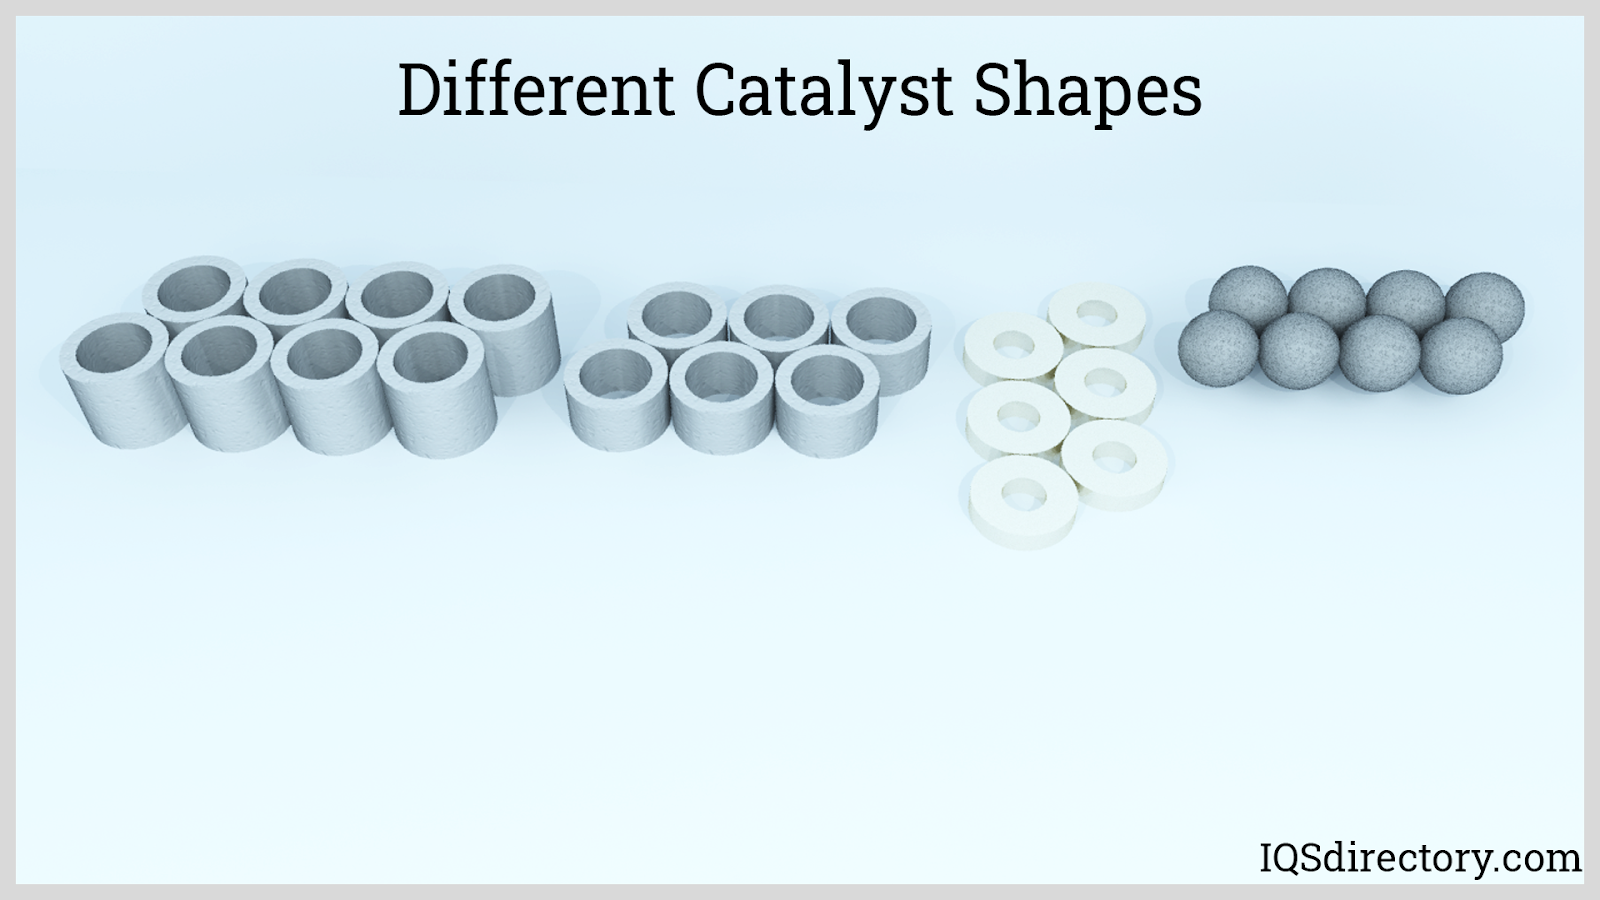 Different Catalyst Shapes